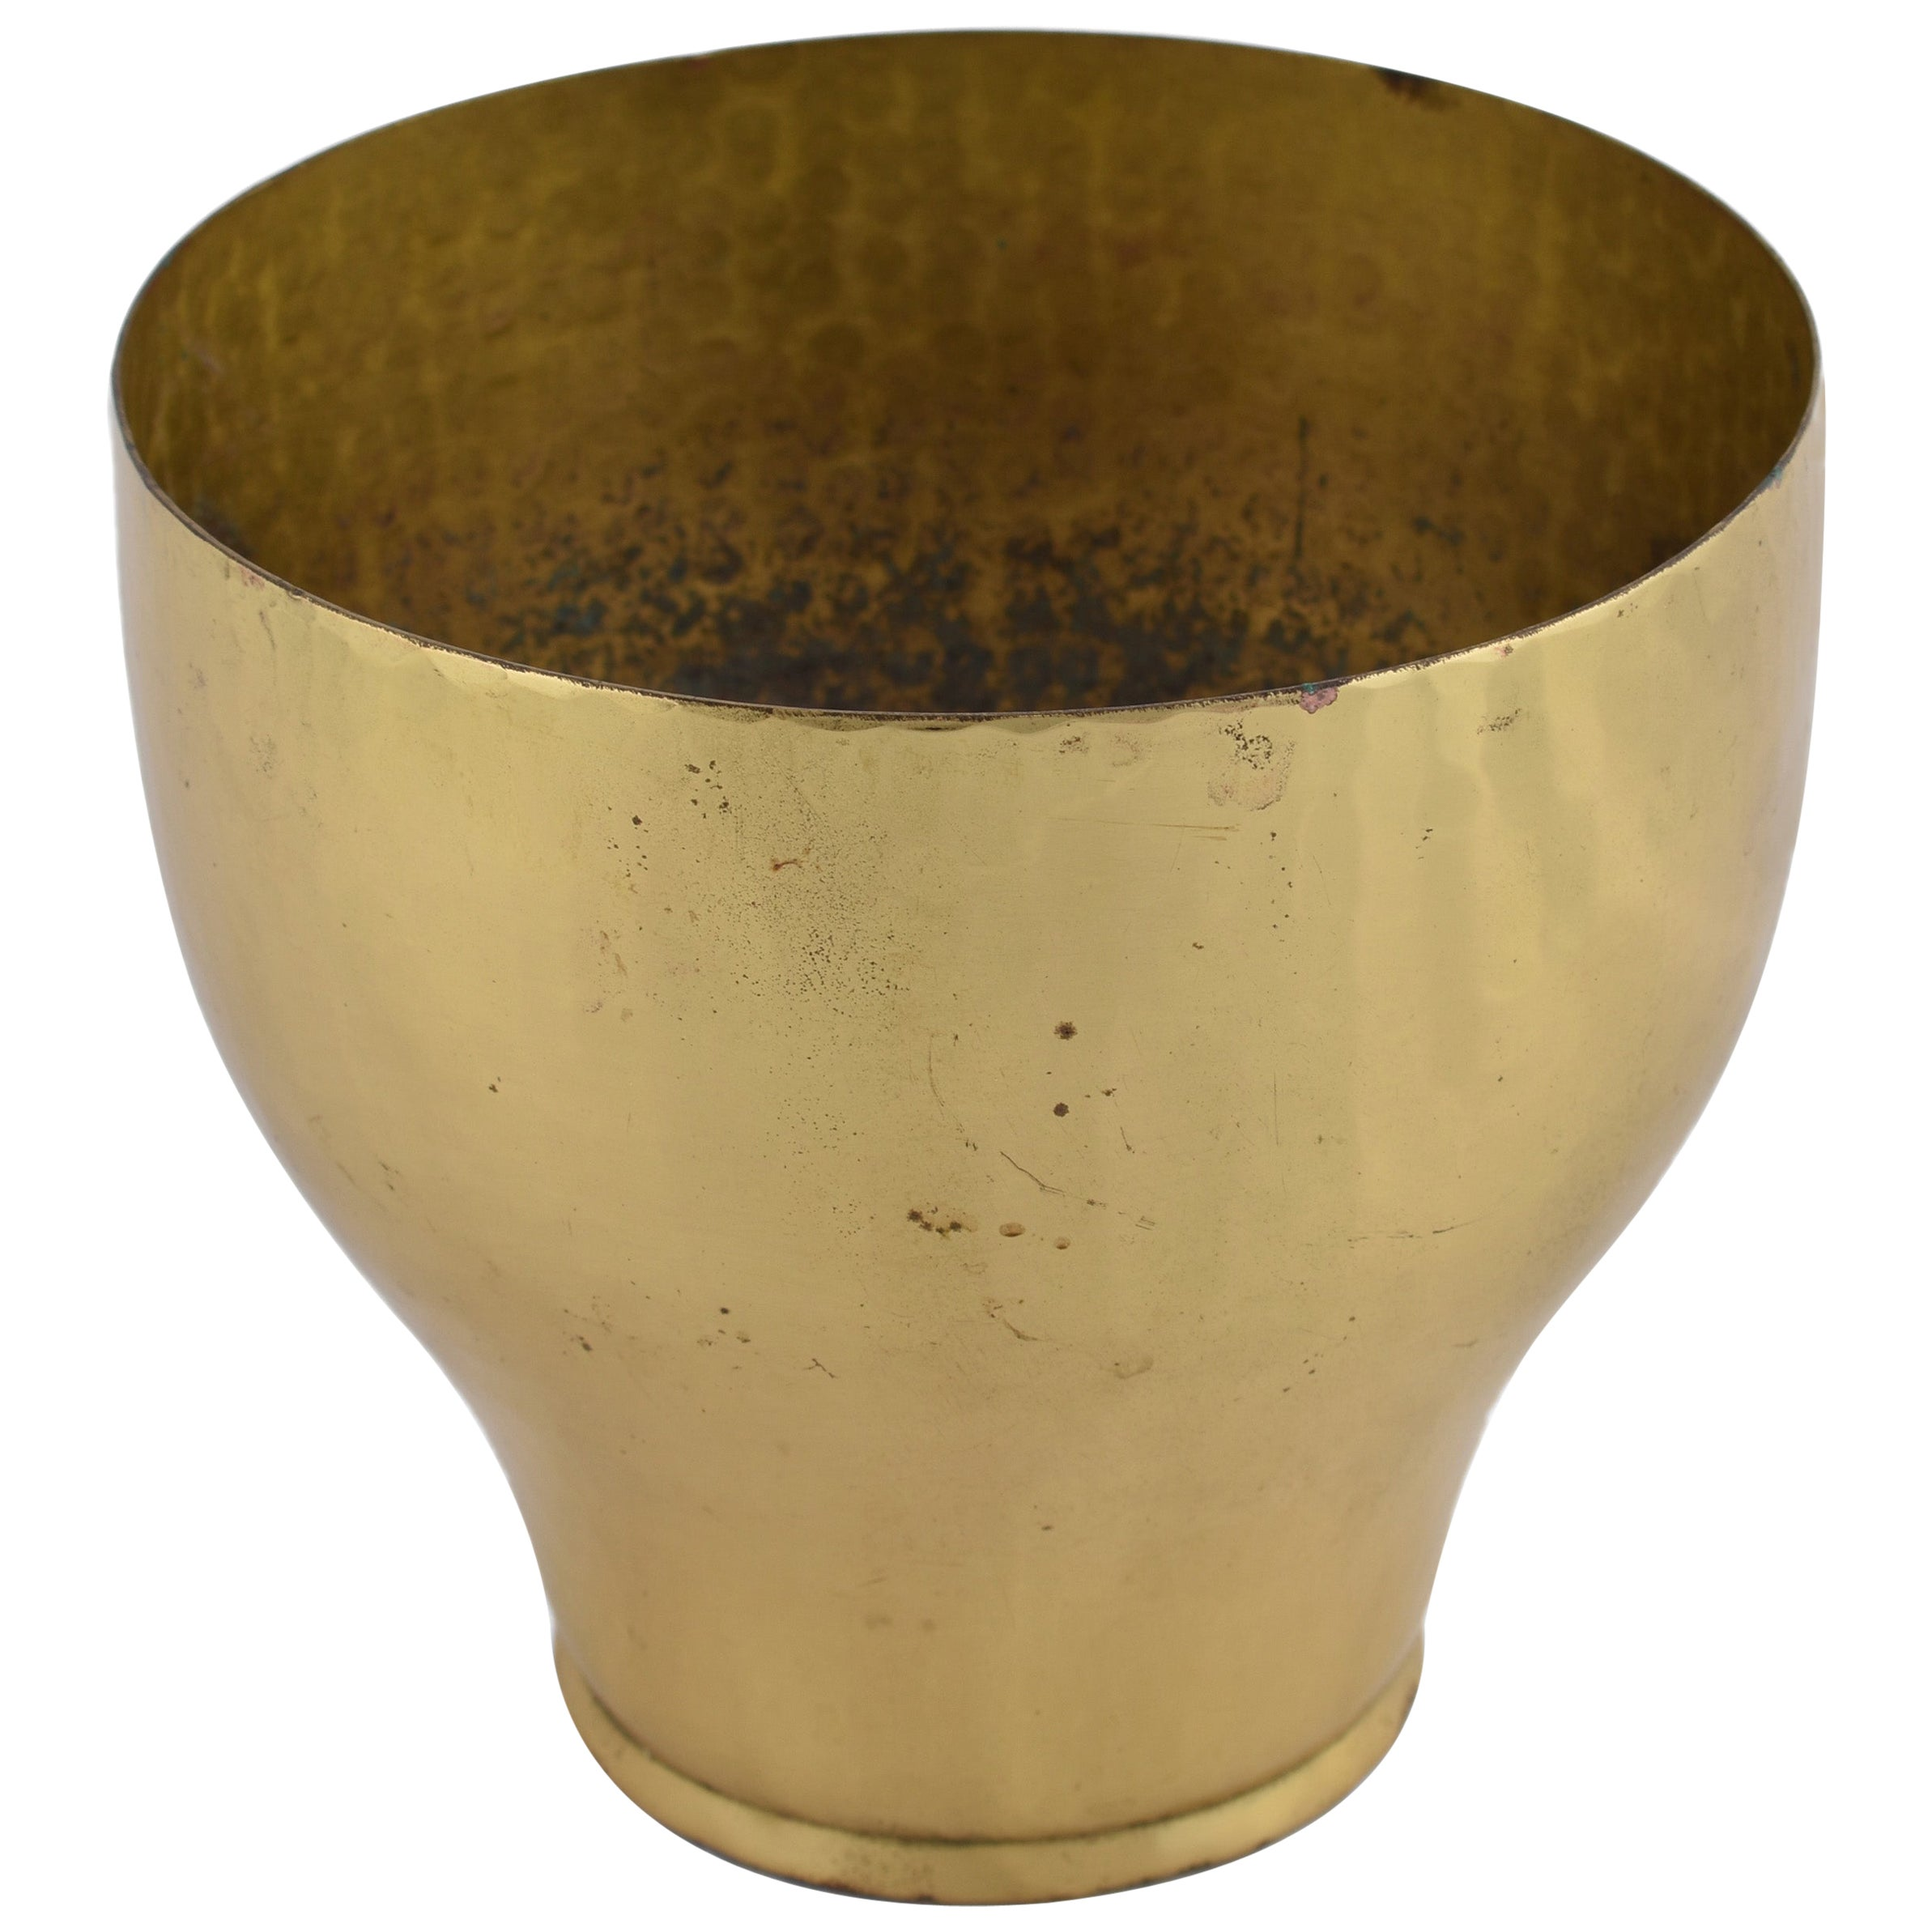 Vintage Brass Plant Pot by Eugen Zint, Germany, 1950s